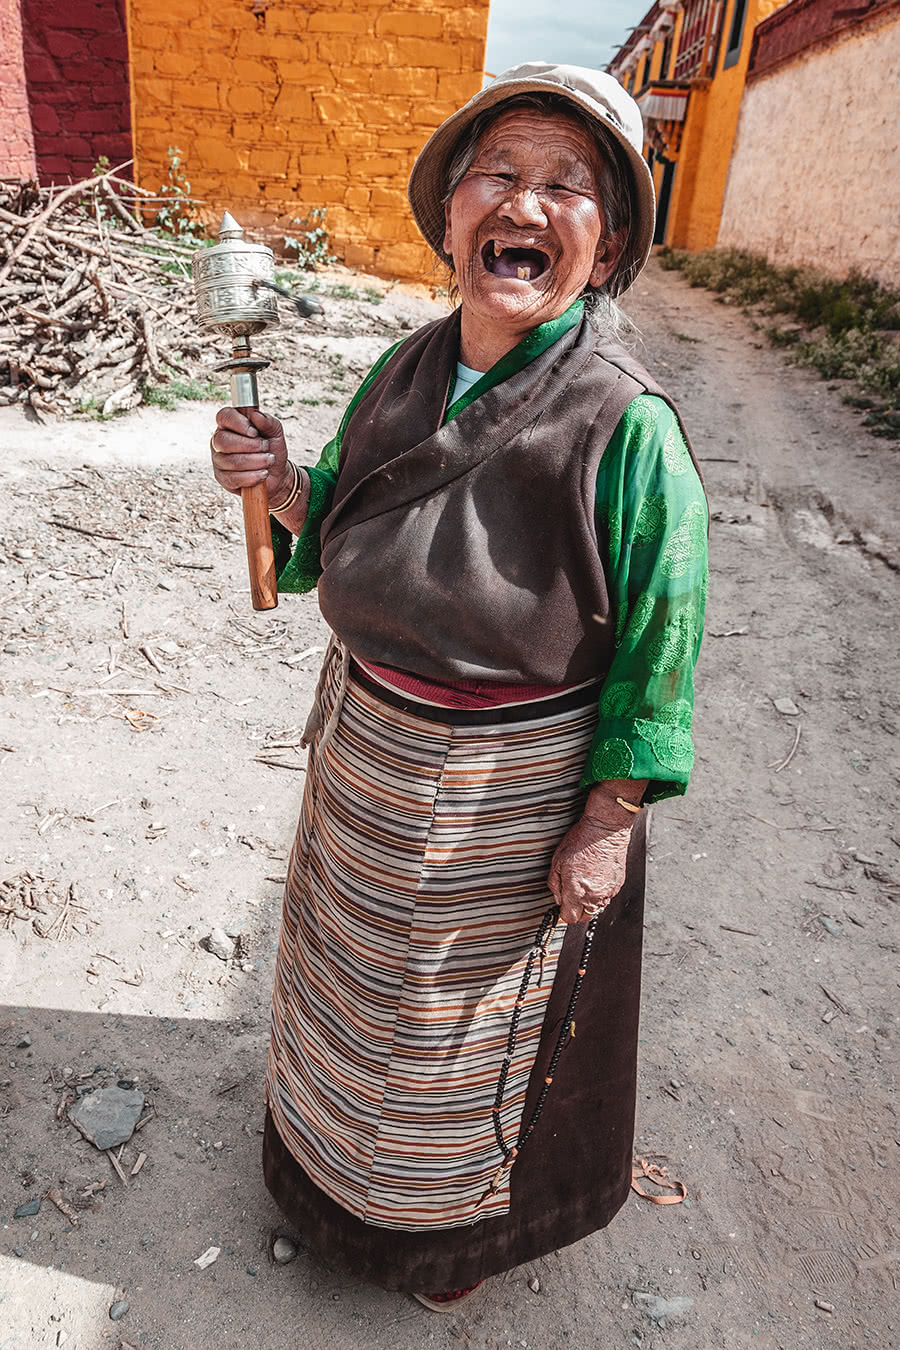 A friendly old Tibetan woman with two teeth great us.